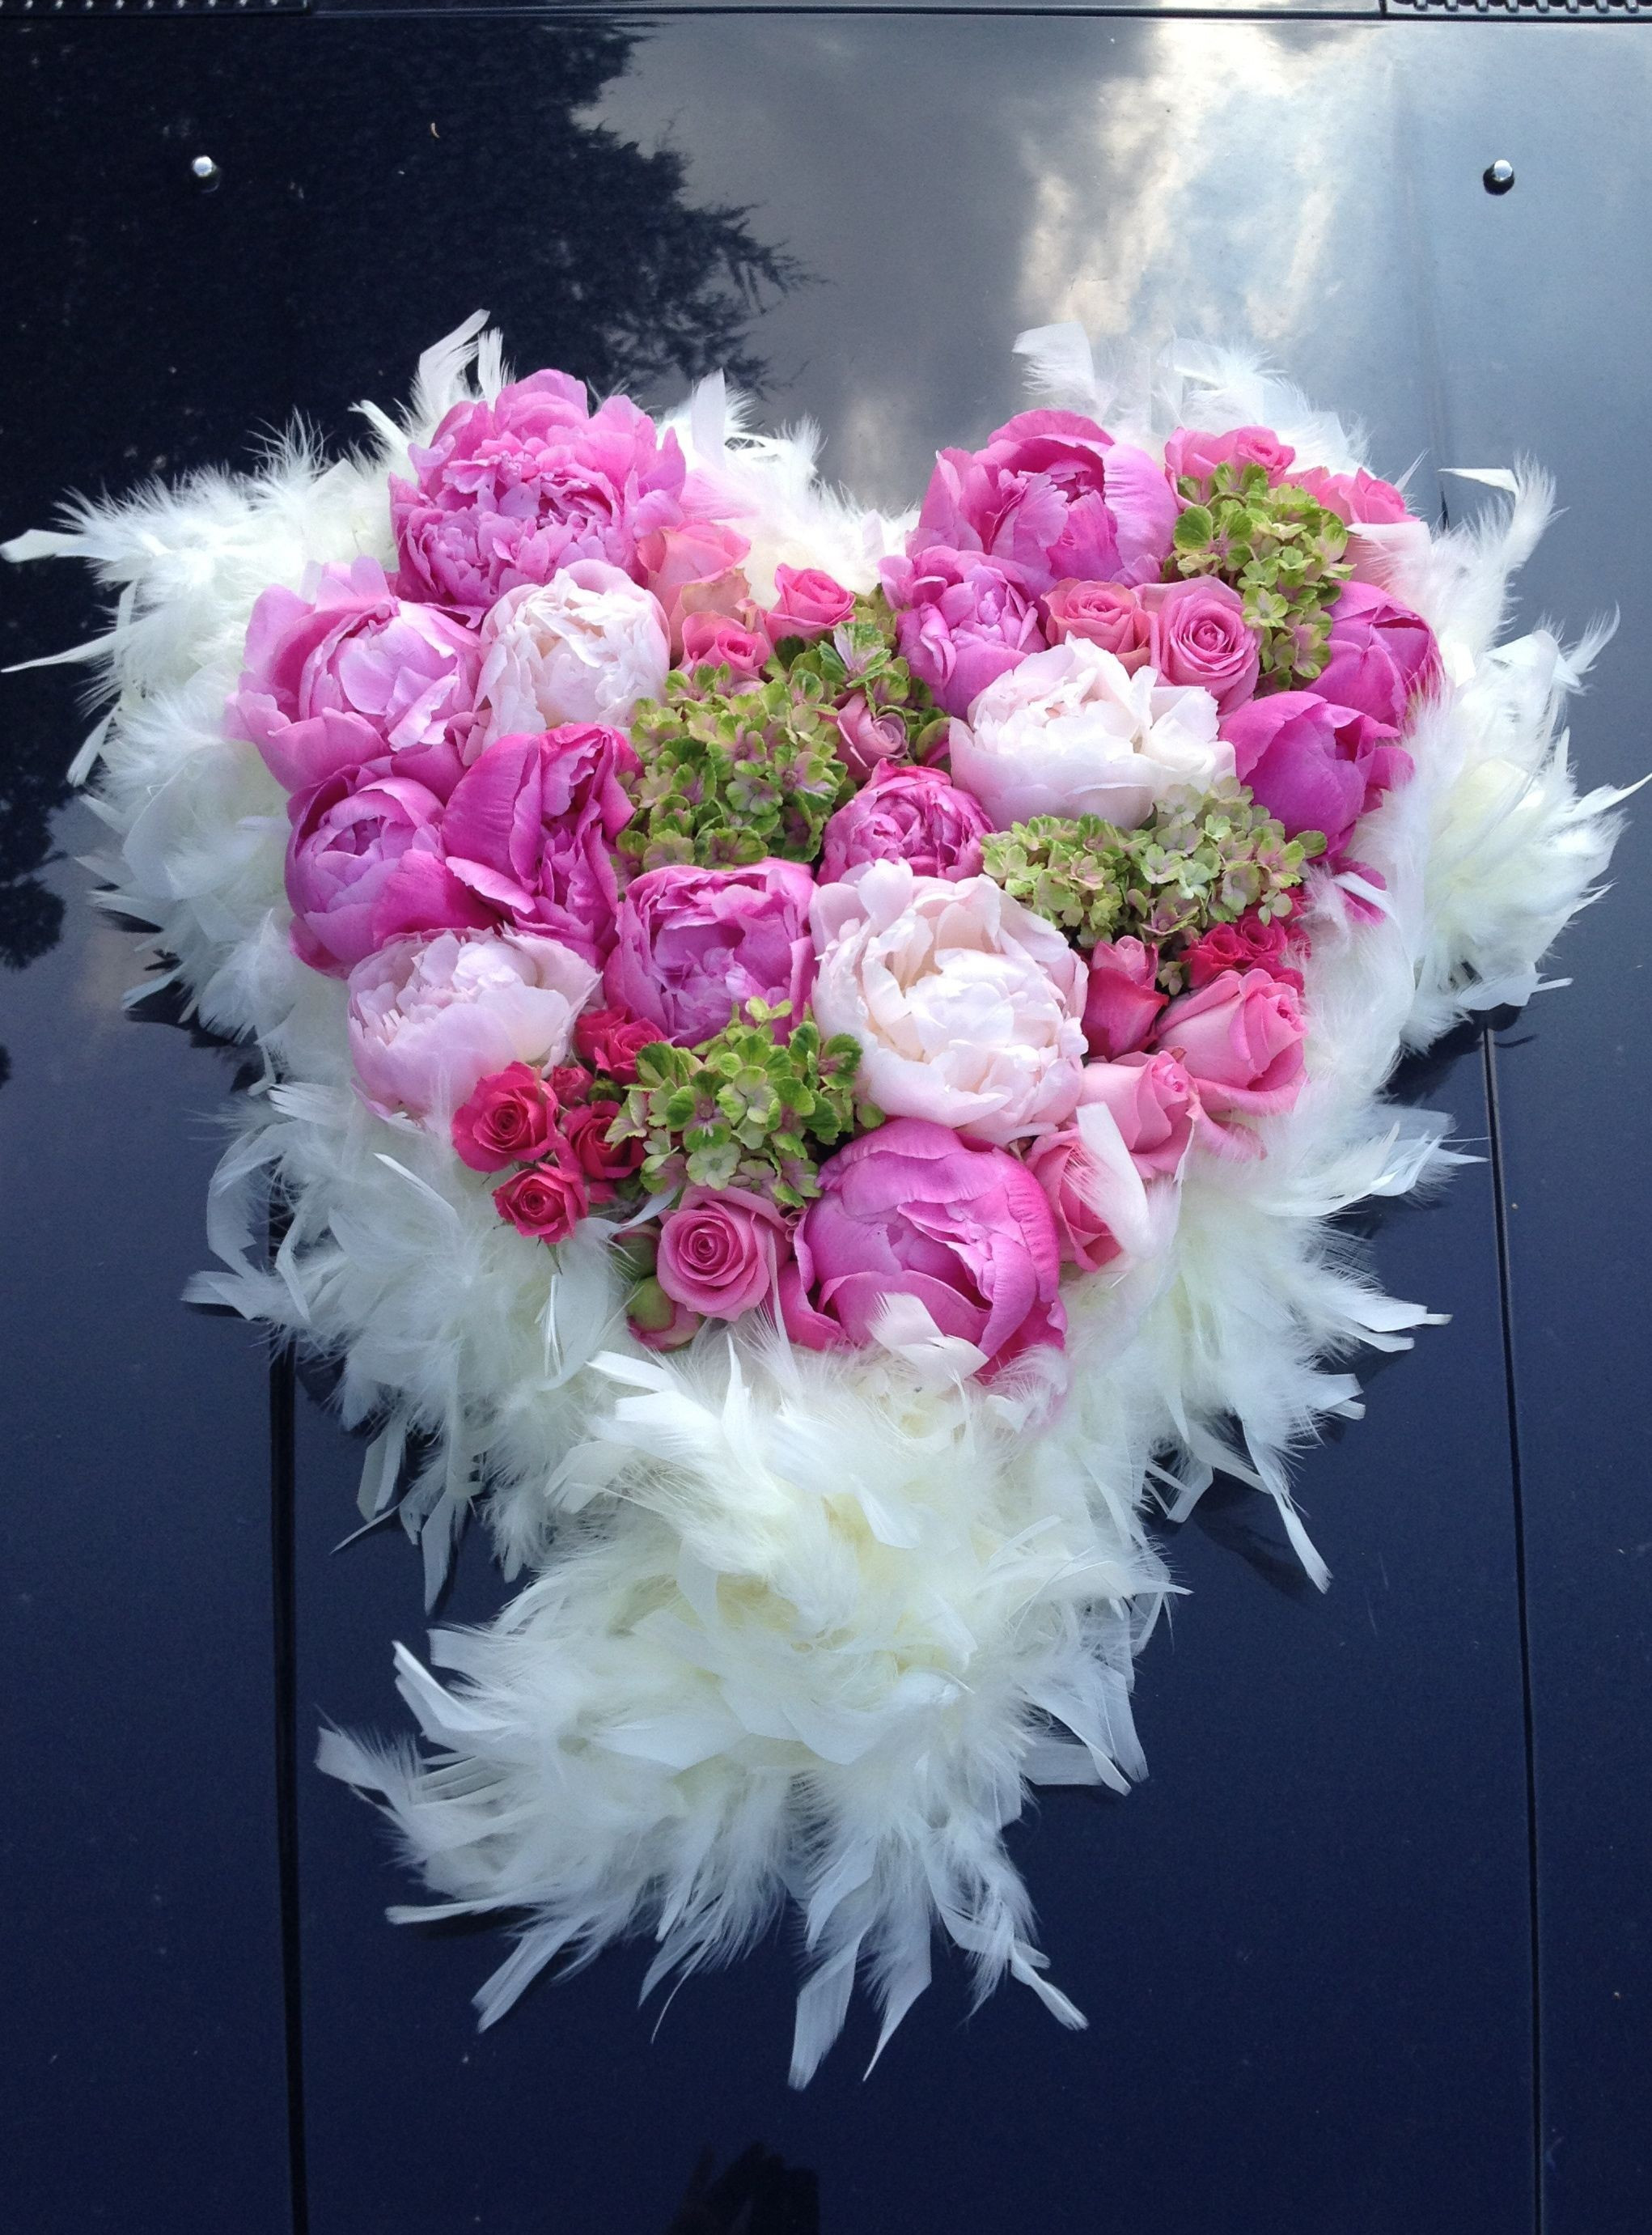 Hydrangea Artificial Flowers In Vase Of Hydrangea Decorations Wedding Unique Cool Wedding Ideas as for H within Hydrangea Decorations Wedding Lovely Wedding Car Decoration with Pink Peonies Roses Hydrangea and White Of Hydrangea